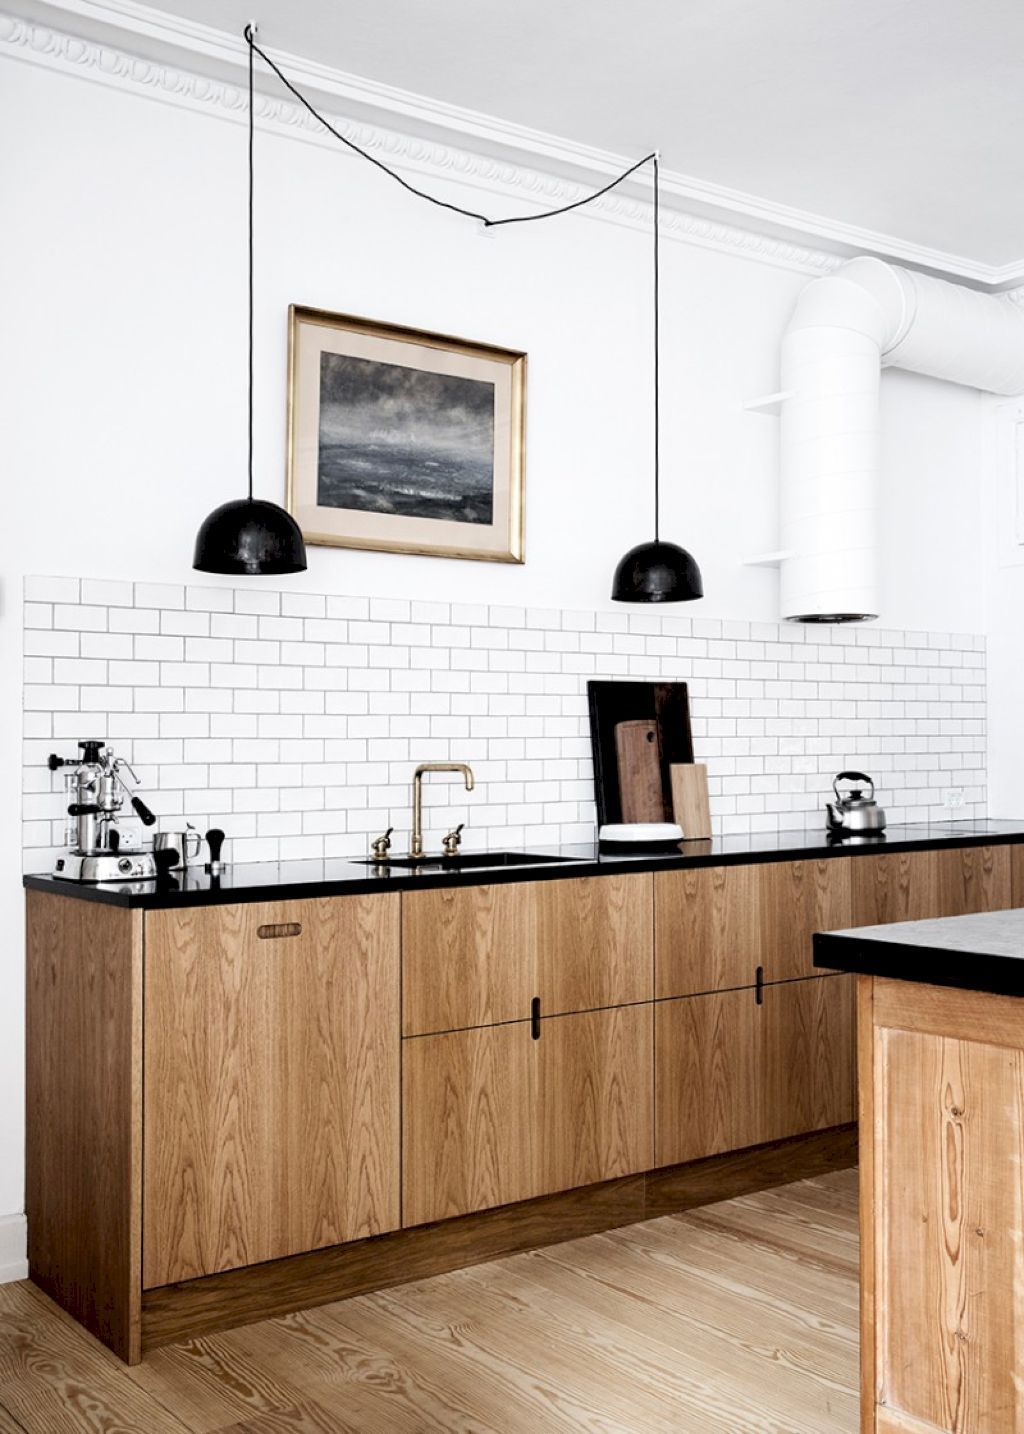 Adorable 63 Gorgeous Modern Scandinavian Kitchen Ideas Https Homeylife Com 63 Gorgeous Moder Scandinavian Kitchen Design Kitchen Design Color Kitchen Styling